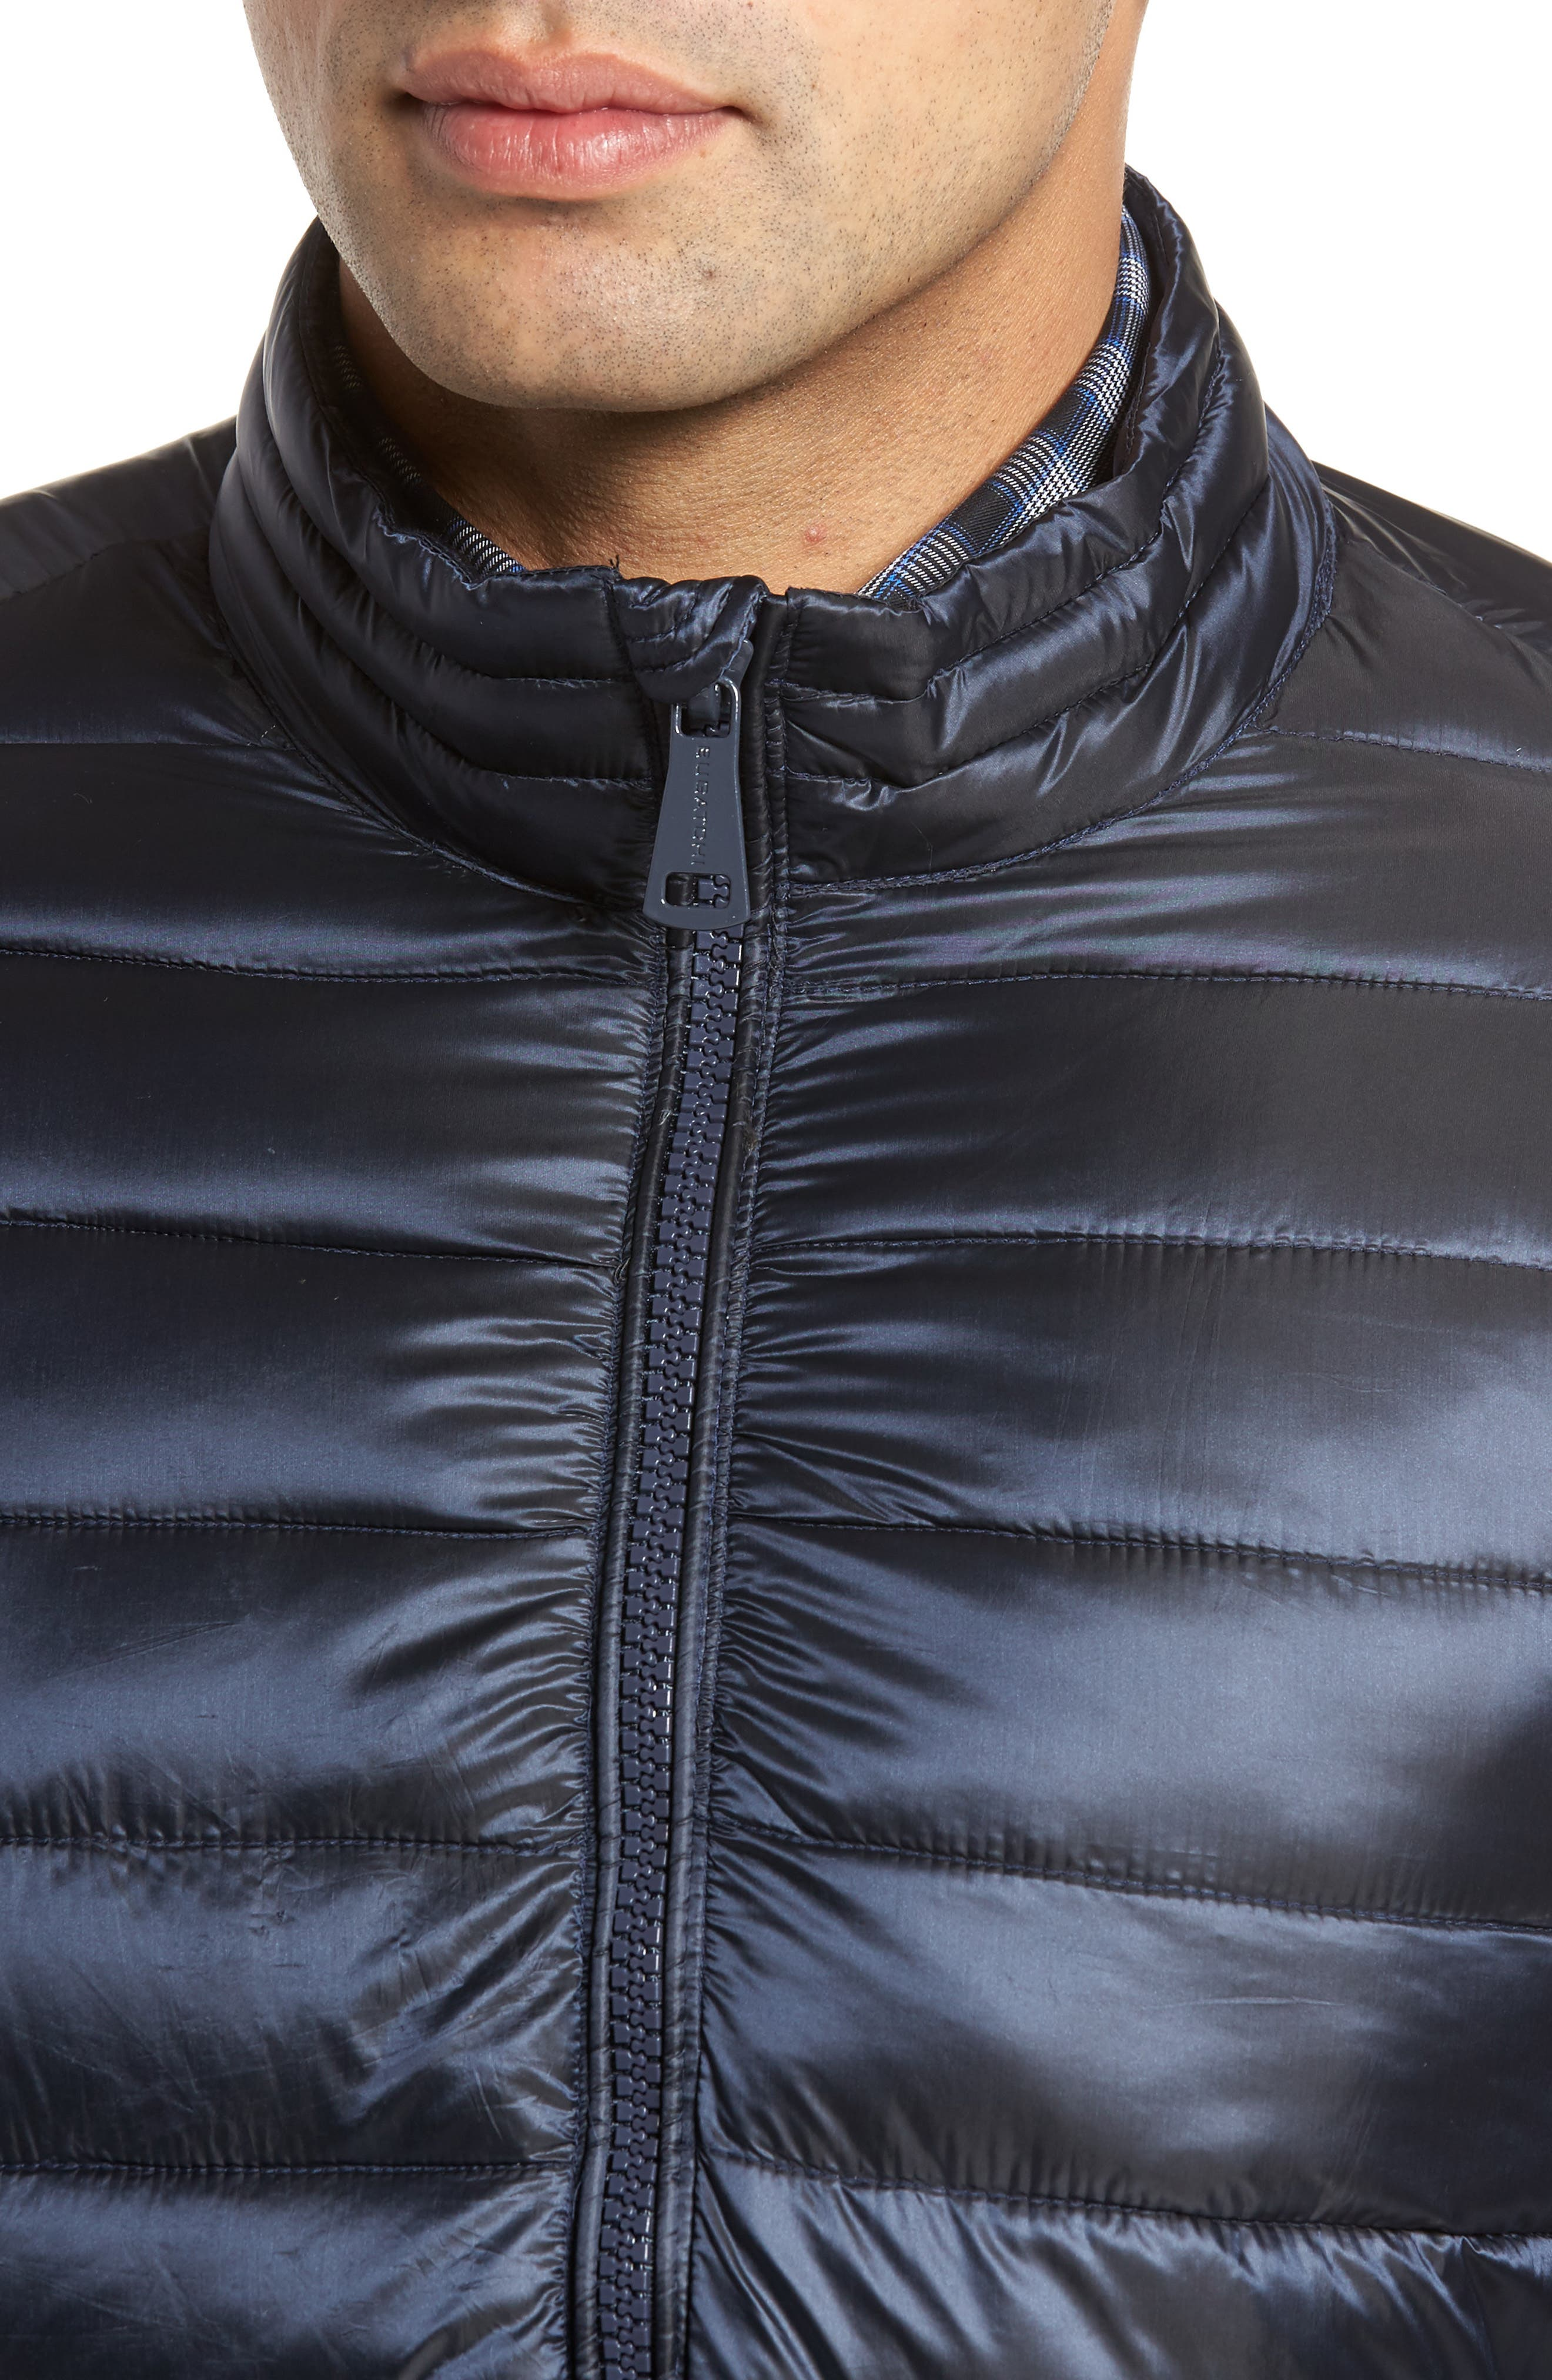 Channel Quilted Jacket,                             Alternate thumbnail 4, color,                             411